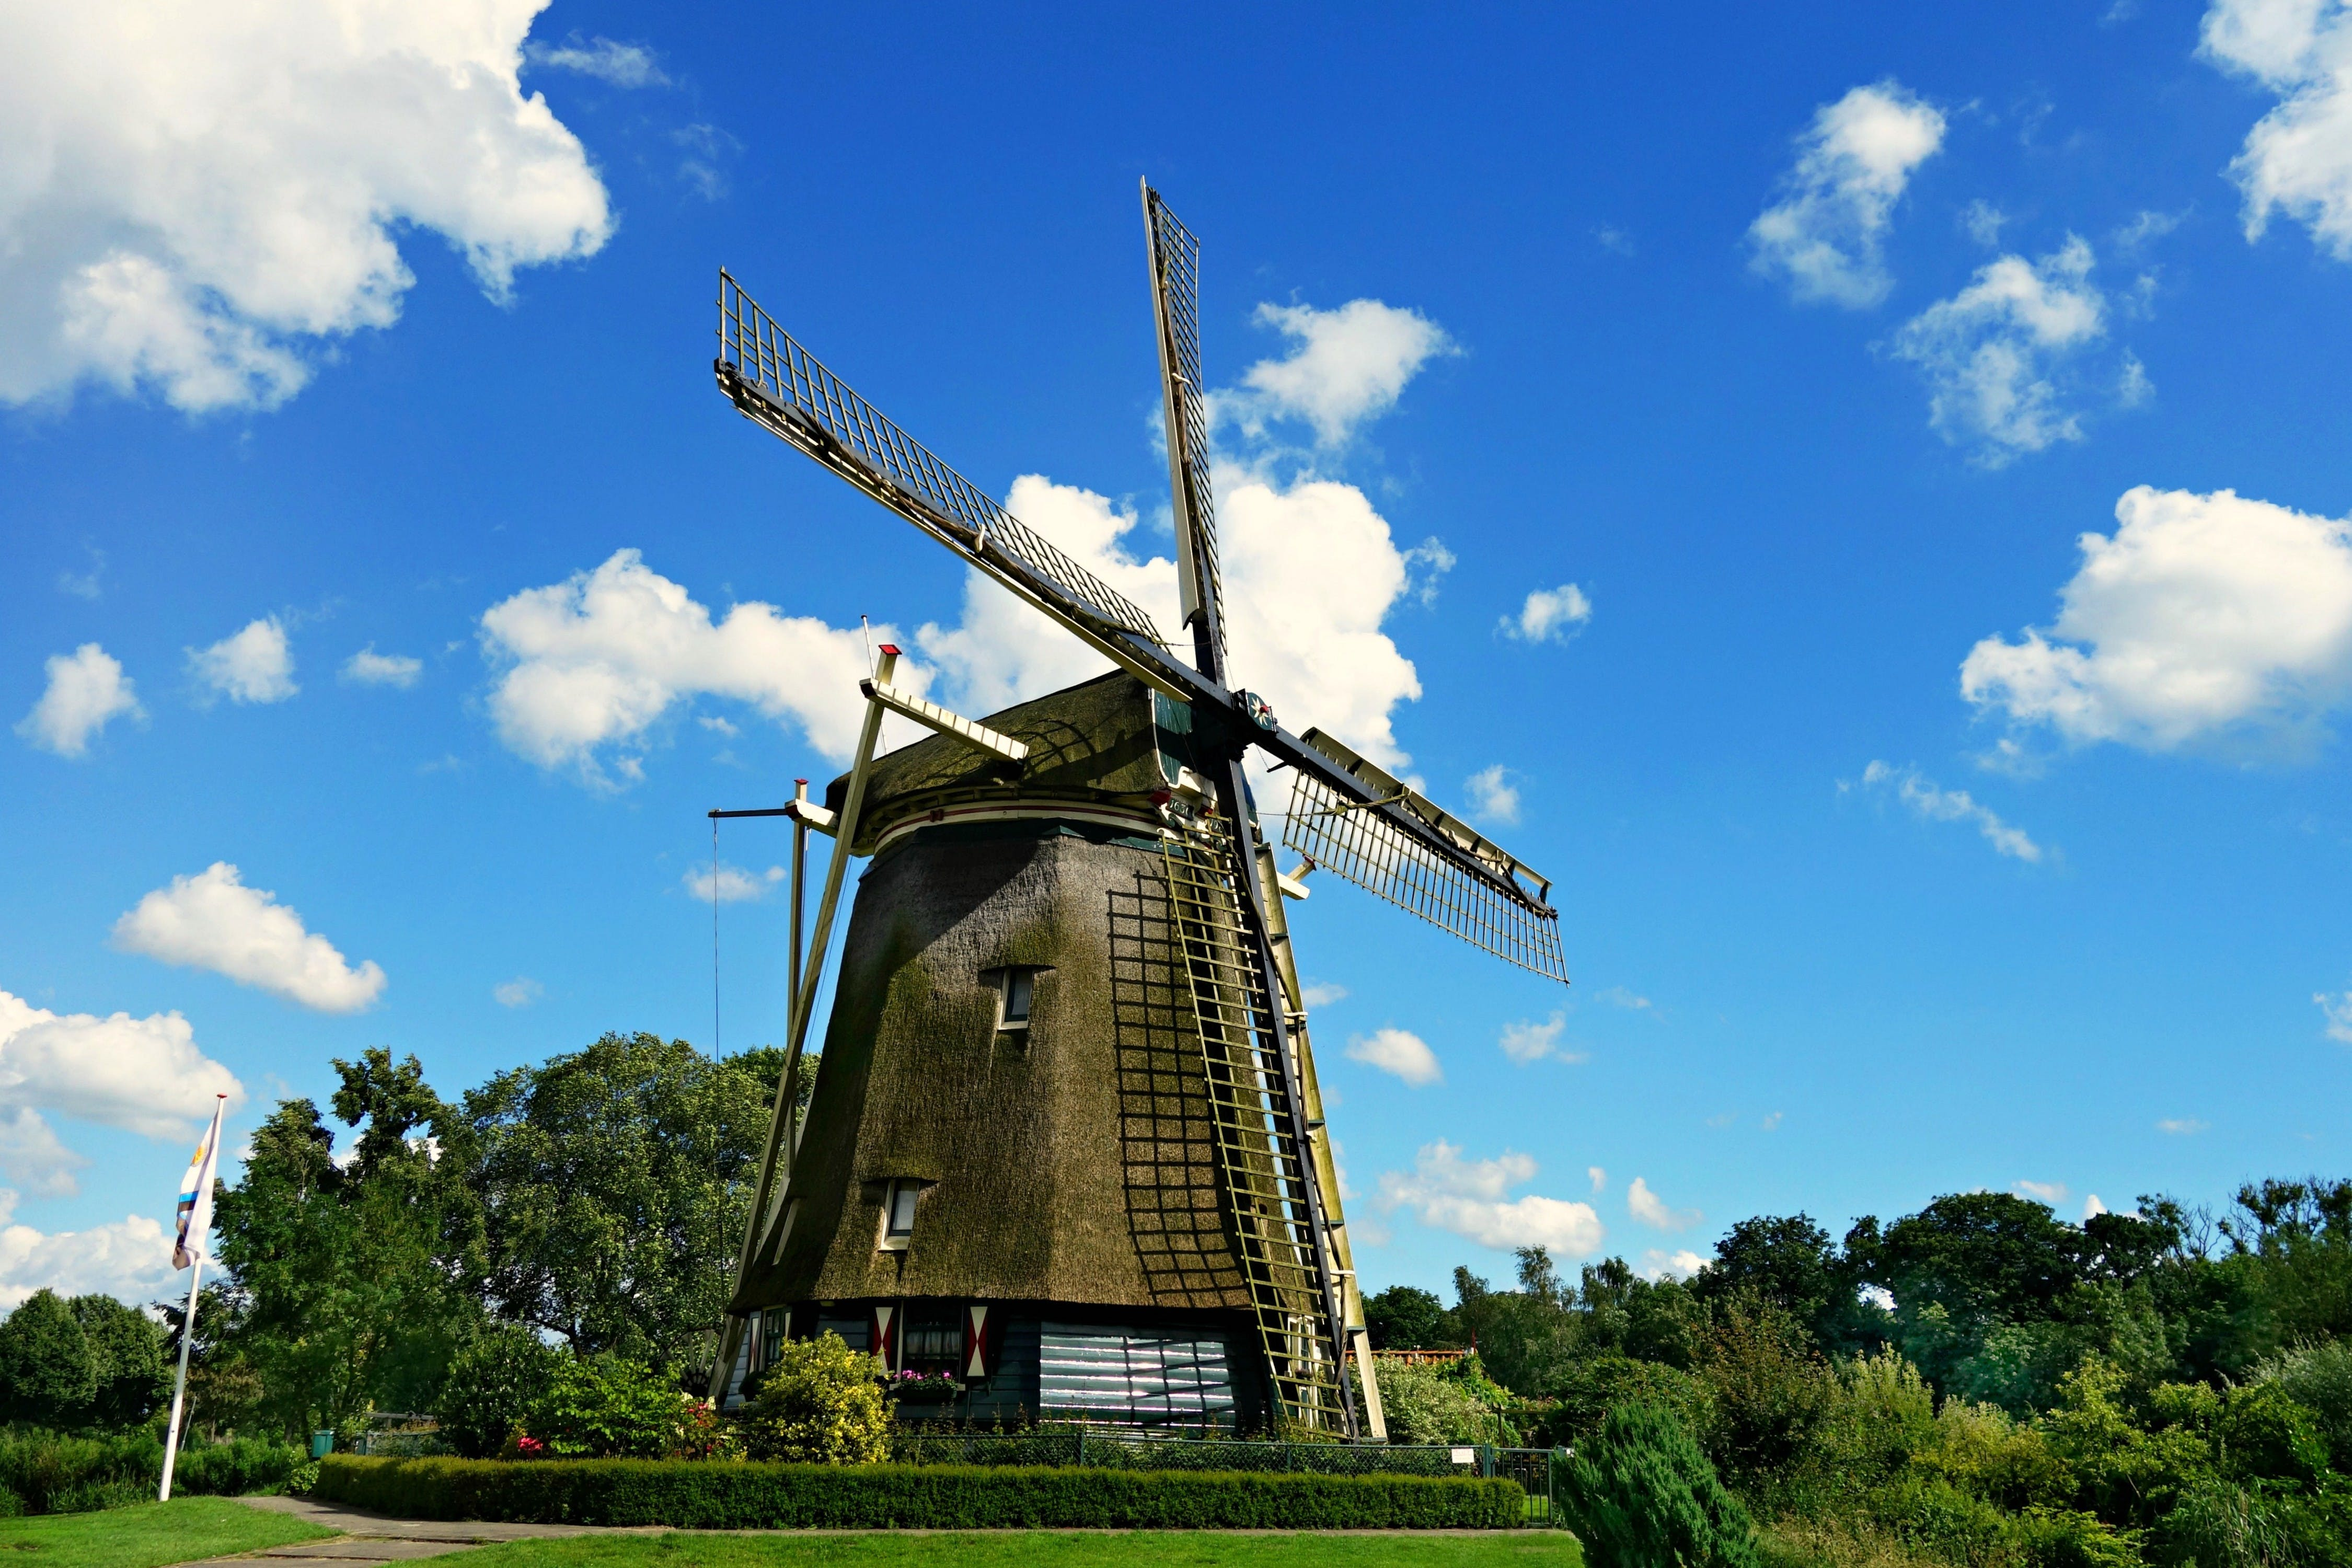 Brown and Black Windmill Under Cumulus Clouds Surrounded by Green Leaf Trees